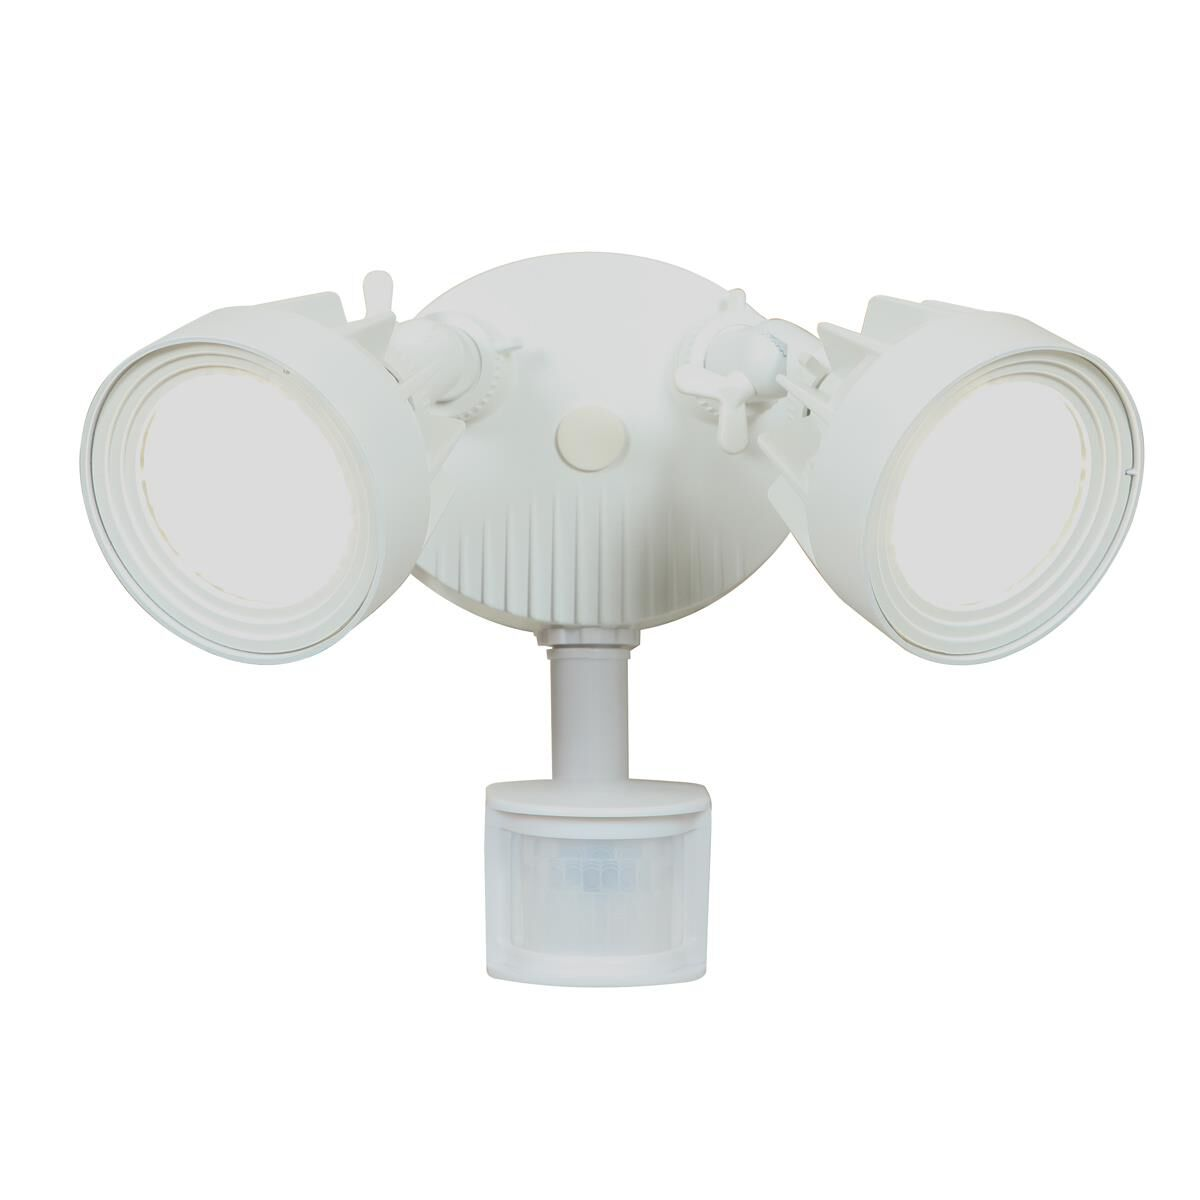 Access Lighting Stealth 11 Inch LED Wall Flood Light Stealth 20785LED WH Modern Contemporary